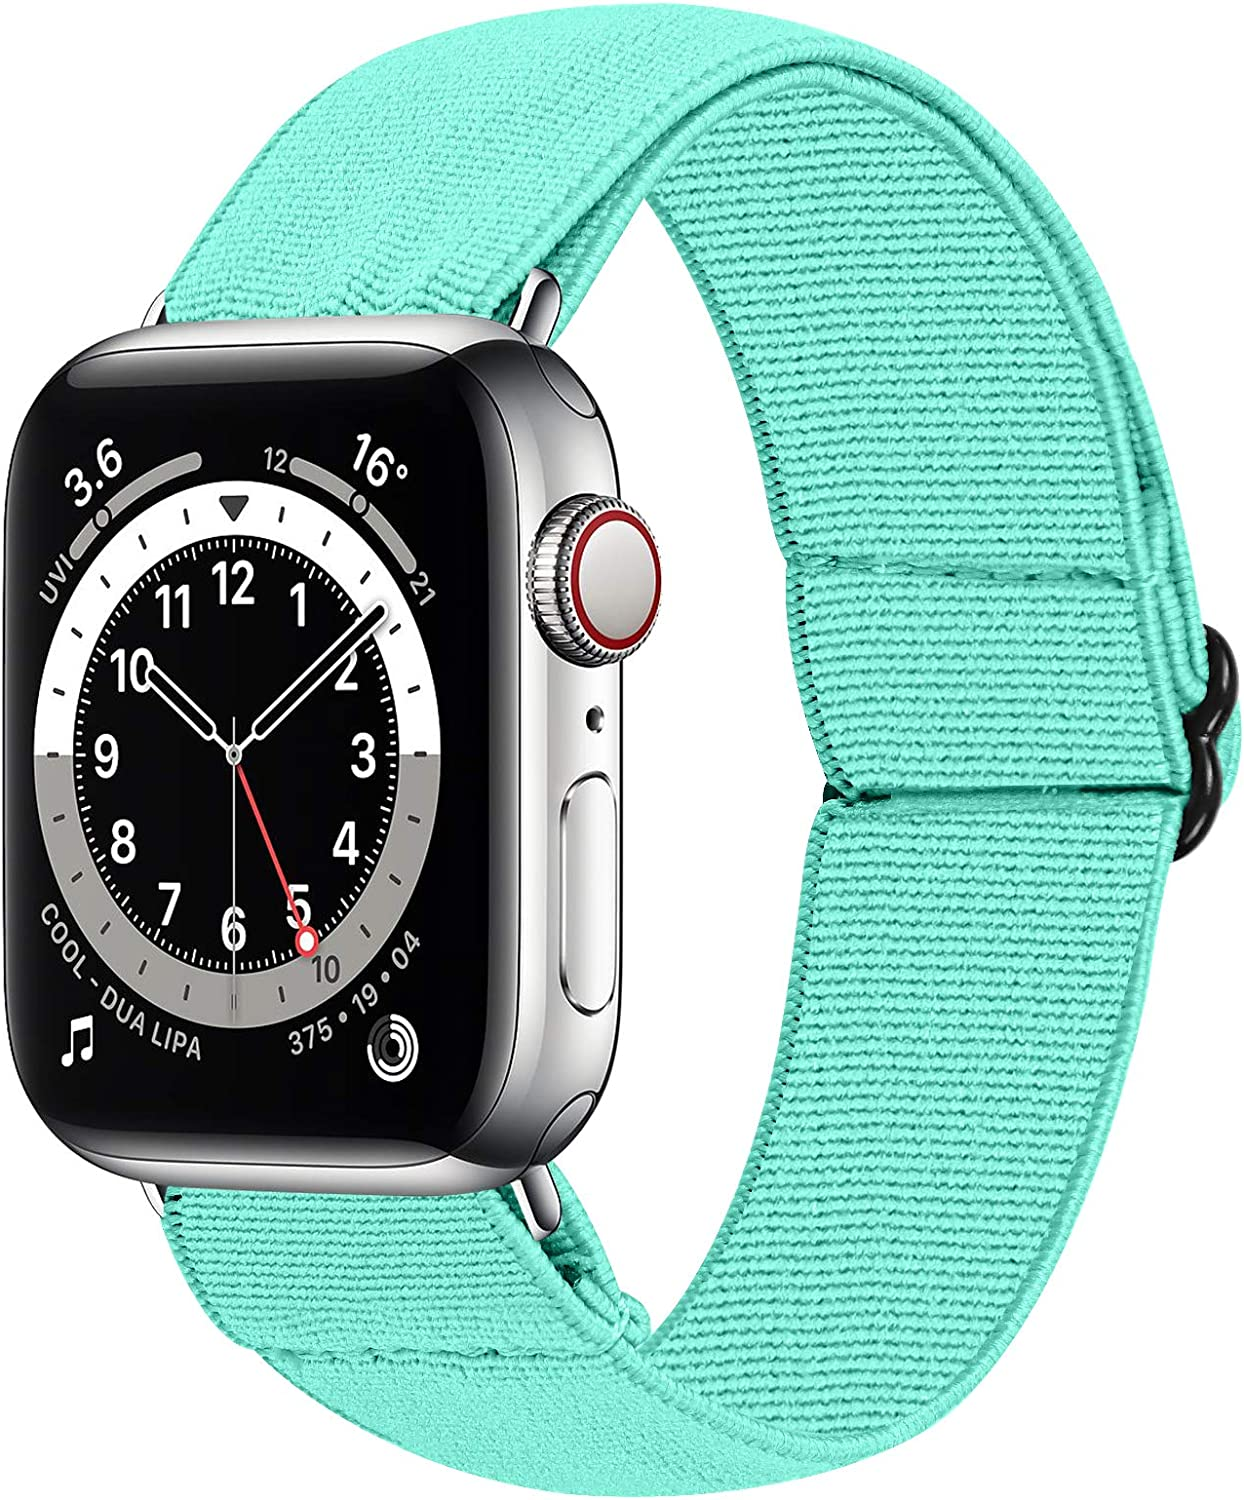 HAYUL Stretchy Nylon Bands Compatible with Apple Watch Bands 38mm 40mm 42mm 44mm, Adjustable Sport Elastics Women Men Wristband for iWatch Series 6/5/4/3/2/1 SE (Turquoise Green, 38/40mm)